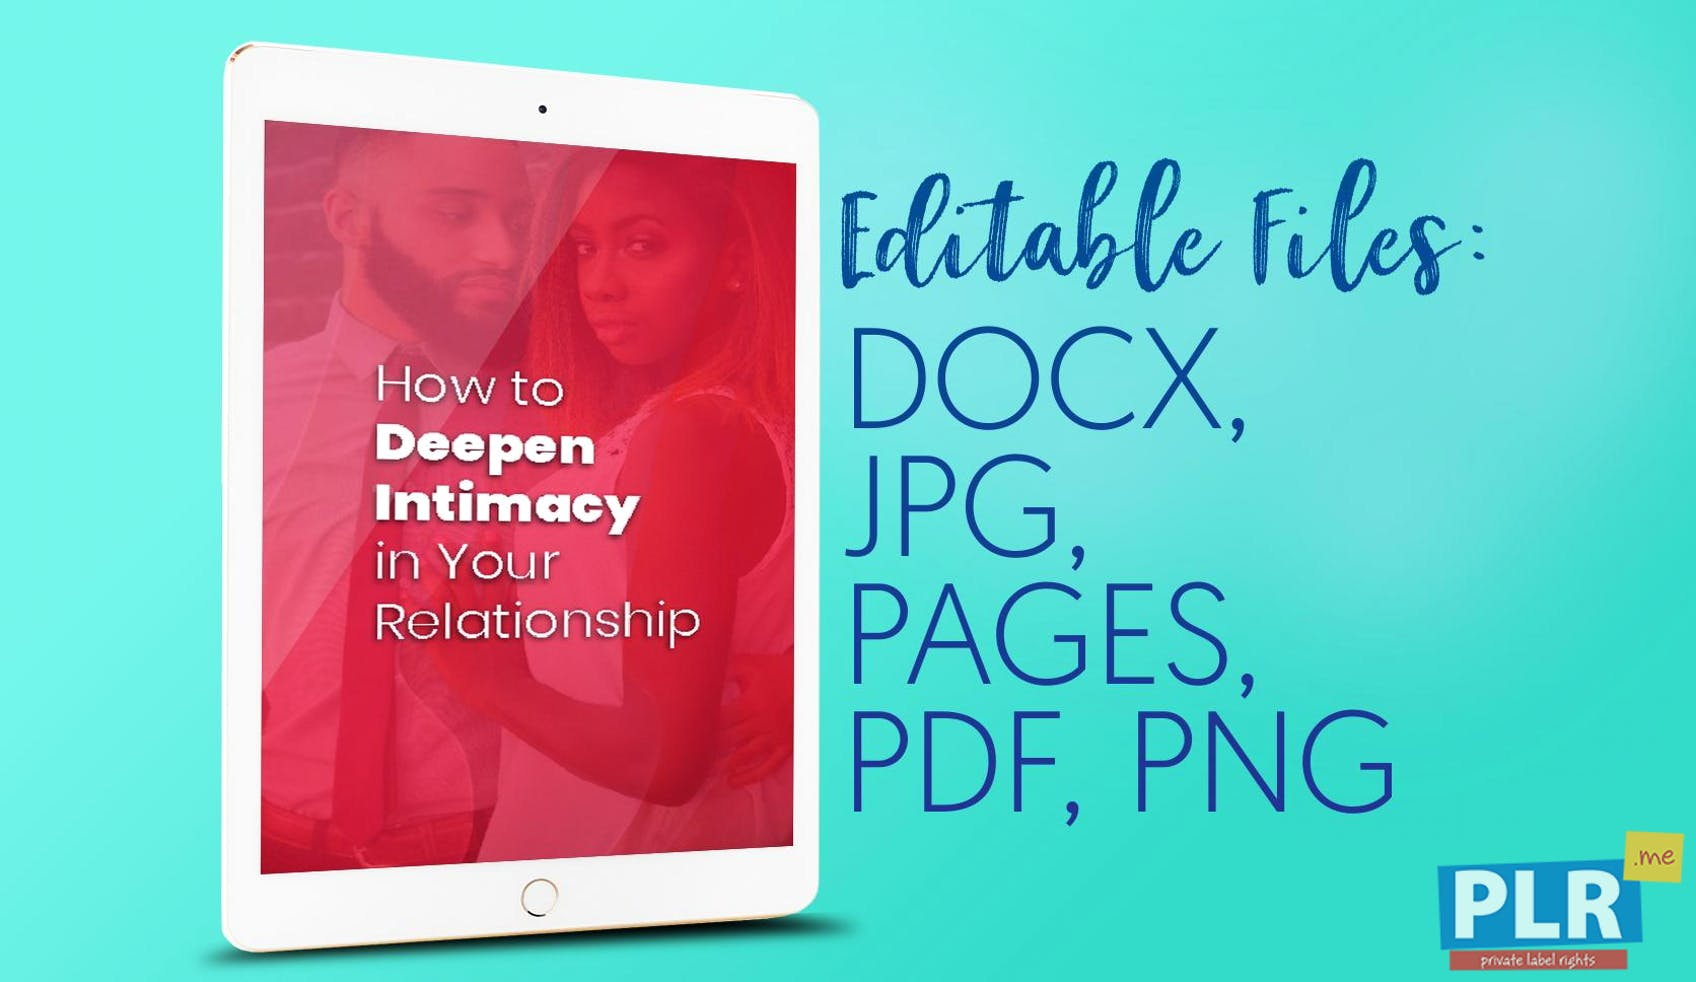 How To Deepen Intimacy In Your Relationship